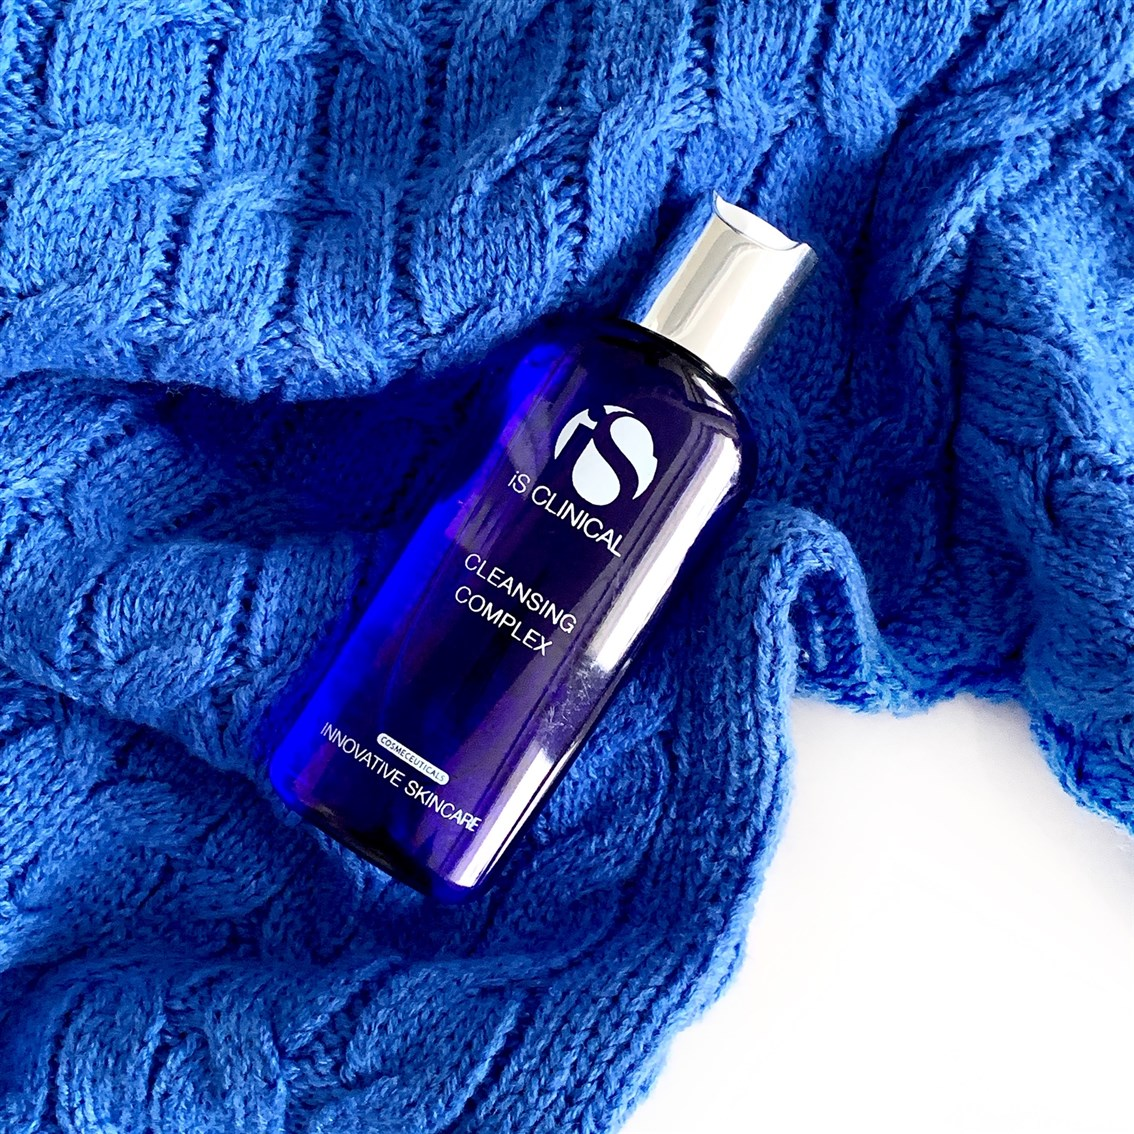 Is Clinical Cleansing Complex blog opinie recenzja